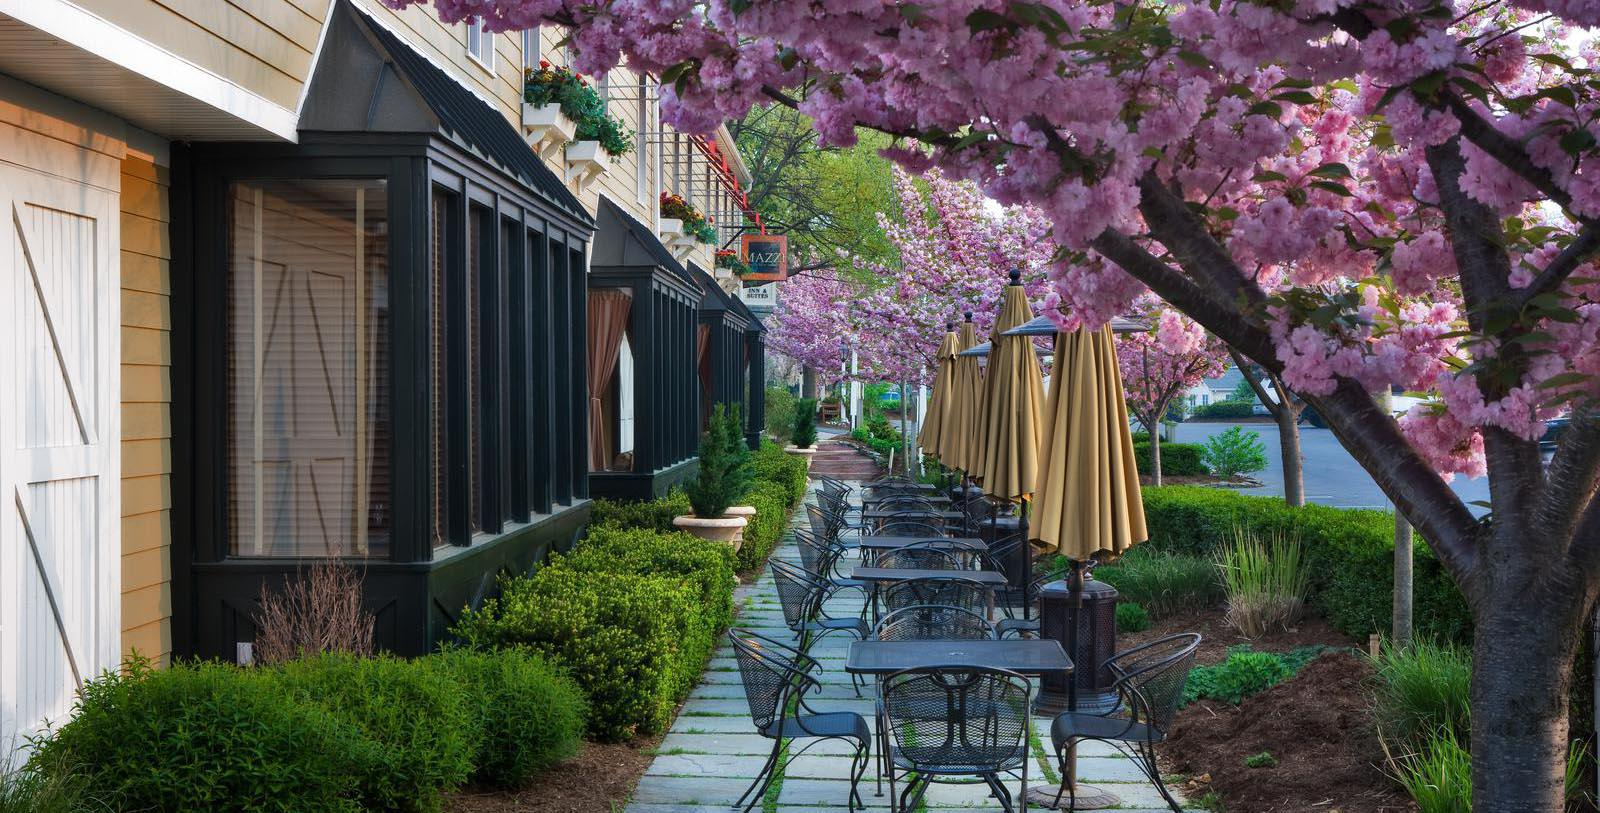 Image of Outdoor Dining Area The Inn at Leola Village, Est. 1867, 1867, Member of Historic Hotels of America, in Leola, Pennsylvania, Explore